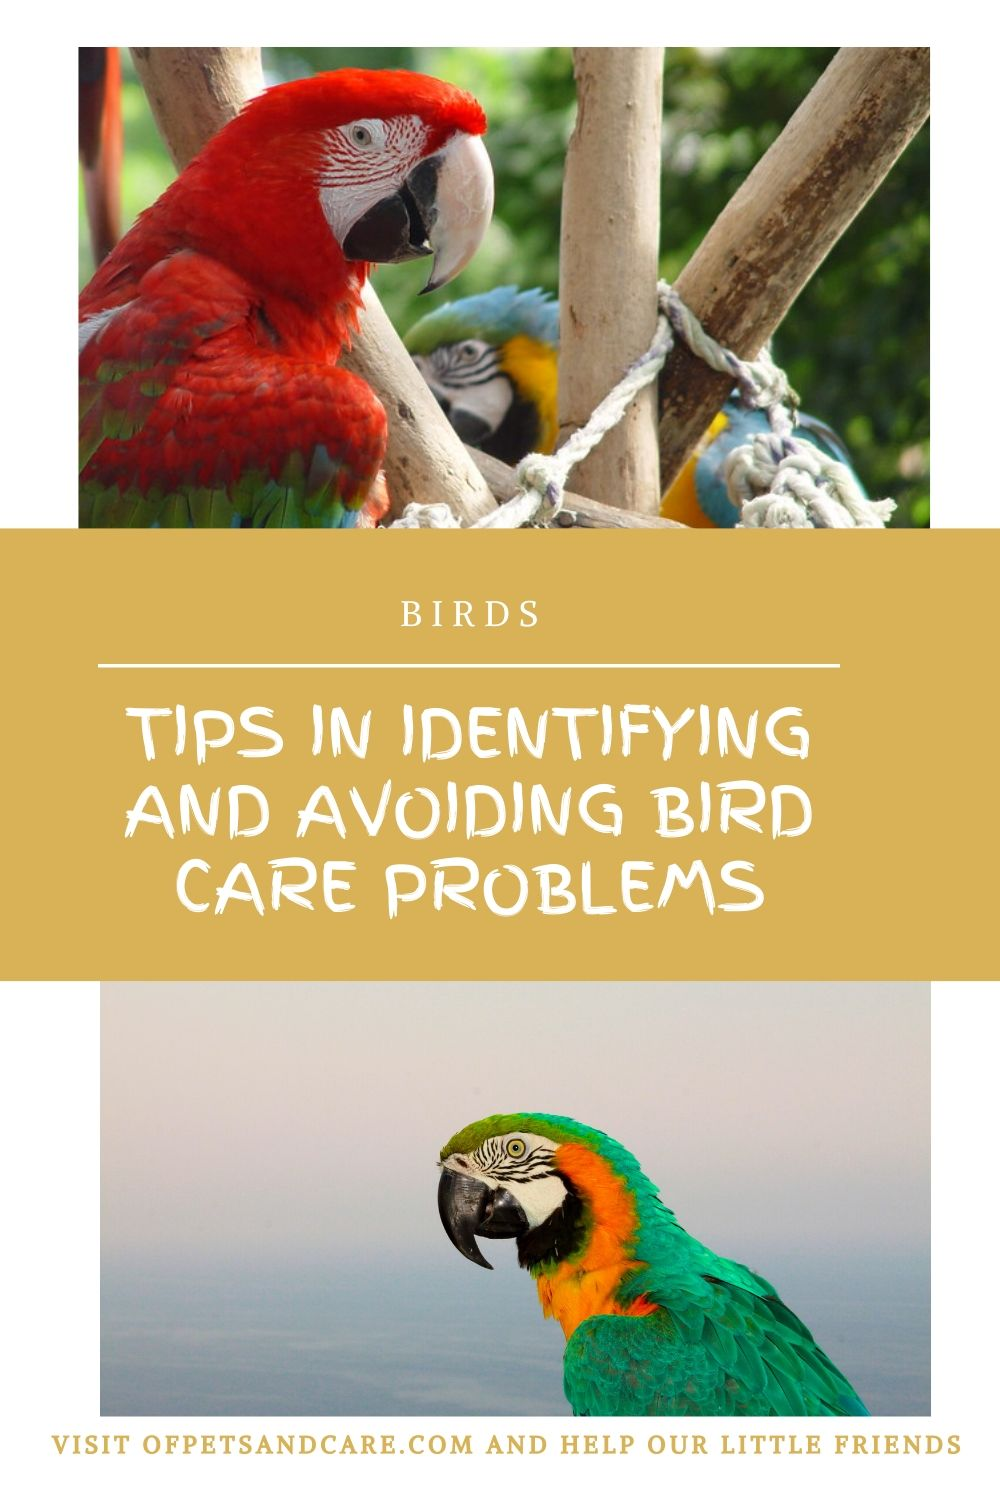 Tips in Identifying and Avoiding Bird Care Problems,